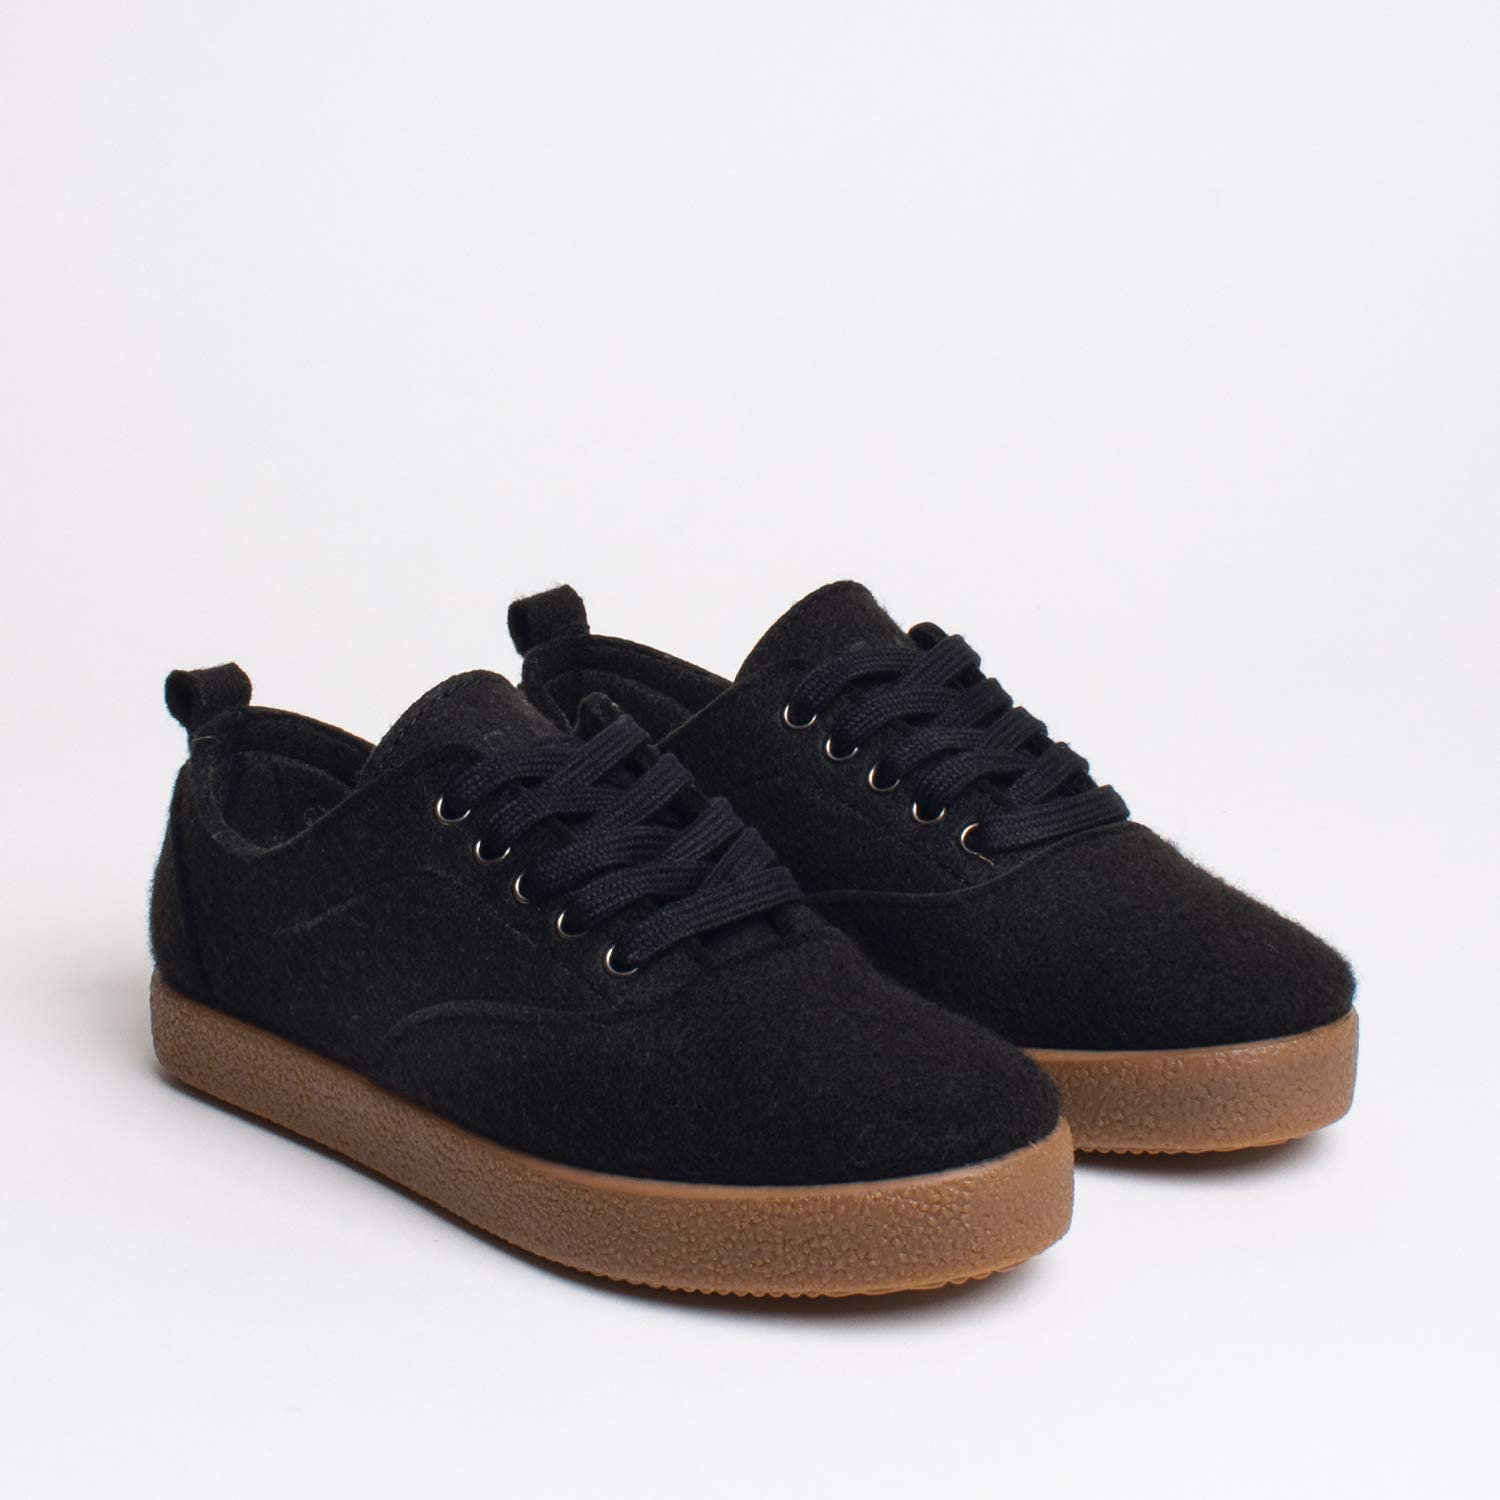 Black Size 37 DNA Footwear This was A Bottle Sustainable Hope Sneaker